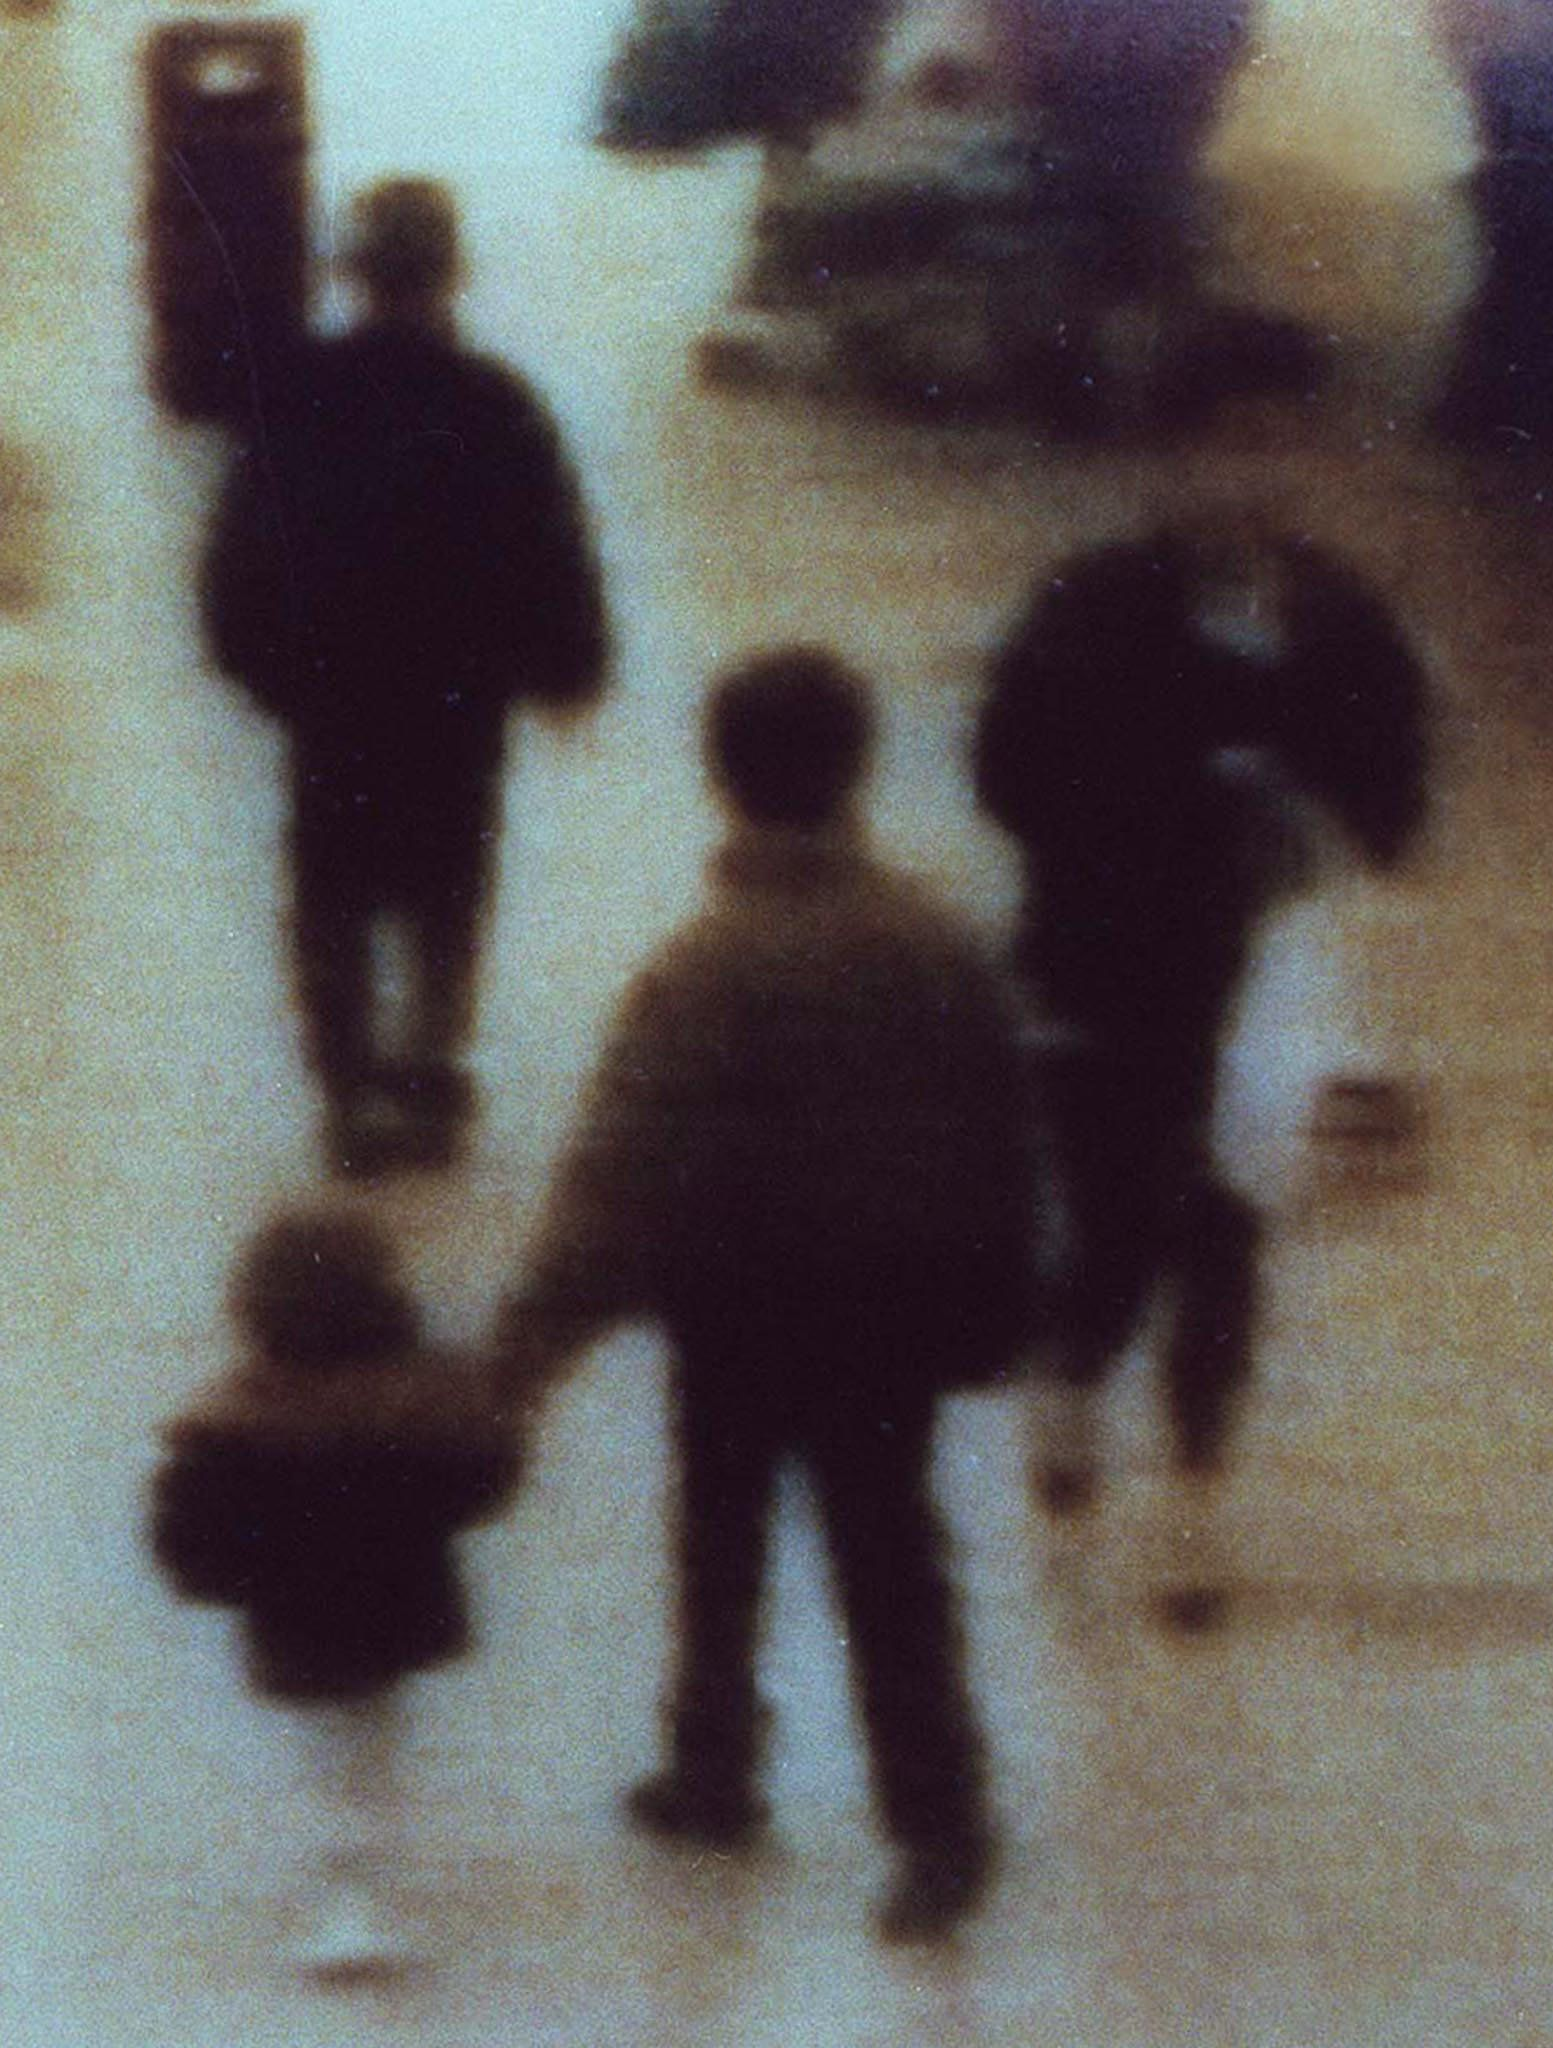 <strong>CCTV footage showing James being led away in the shopping centre he was abducted from </strong>